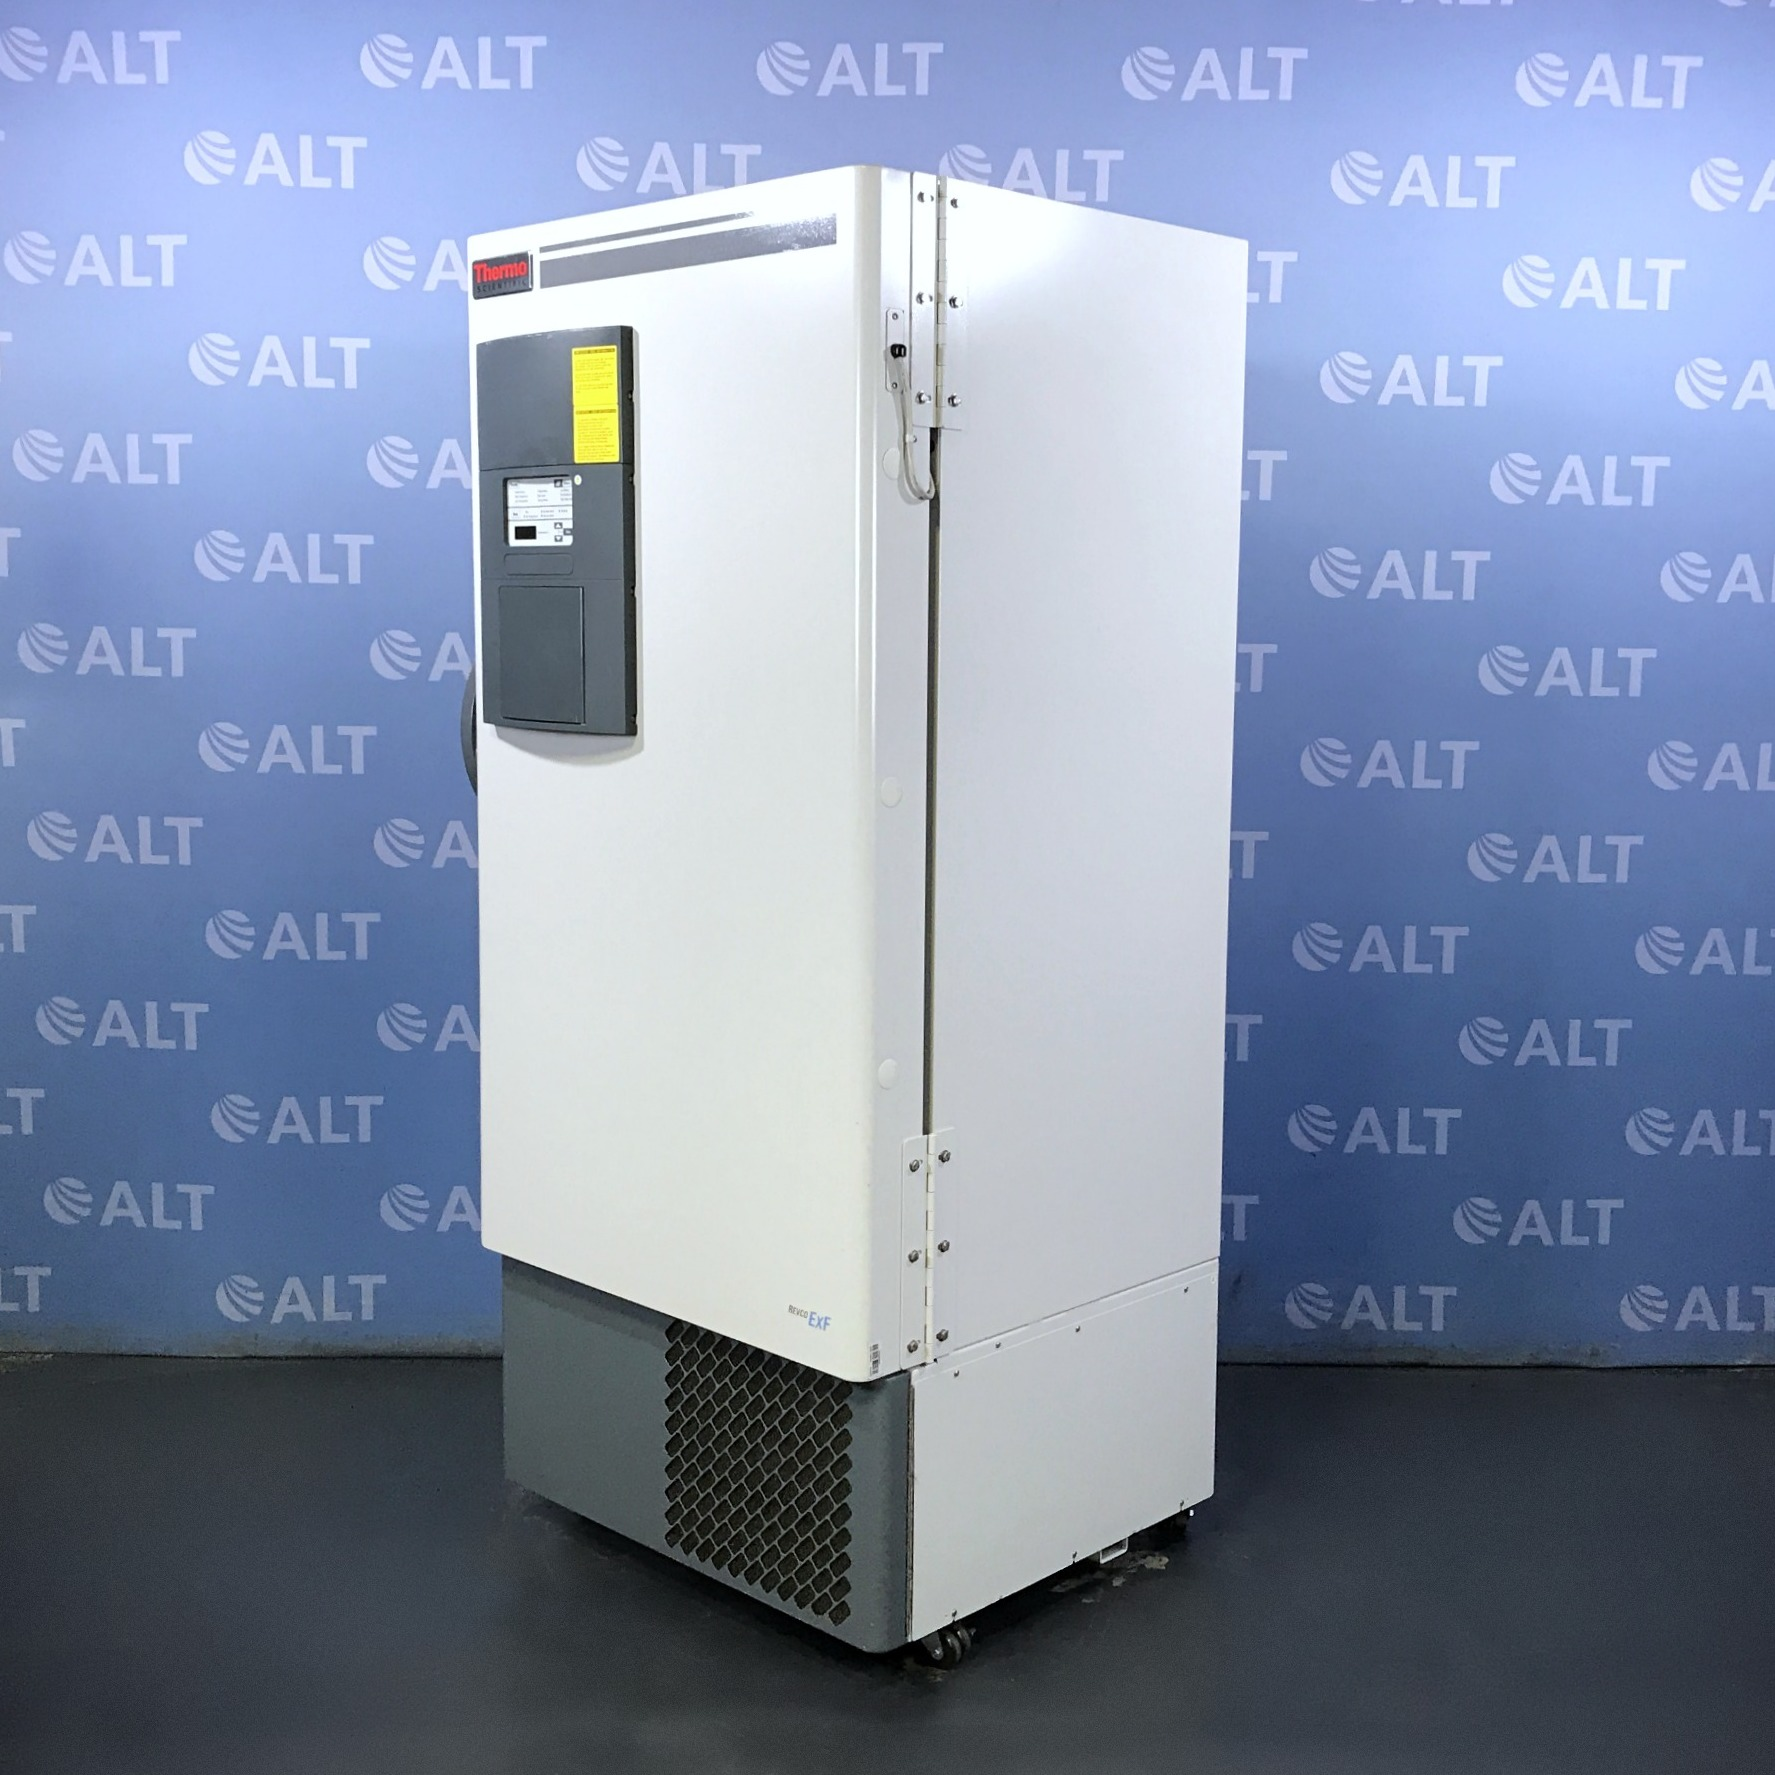 Thermo Scientific Revco ExF -86°C Upright Ultra-Low Temperature Freezer Model EXF24086A Image